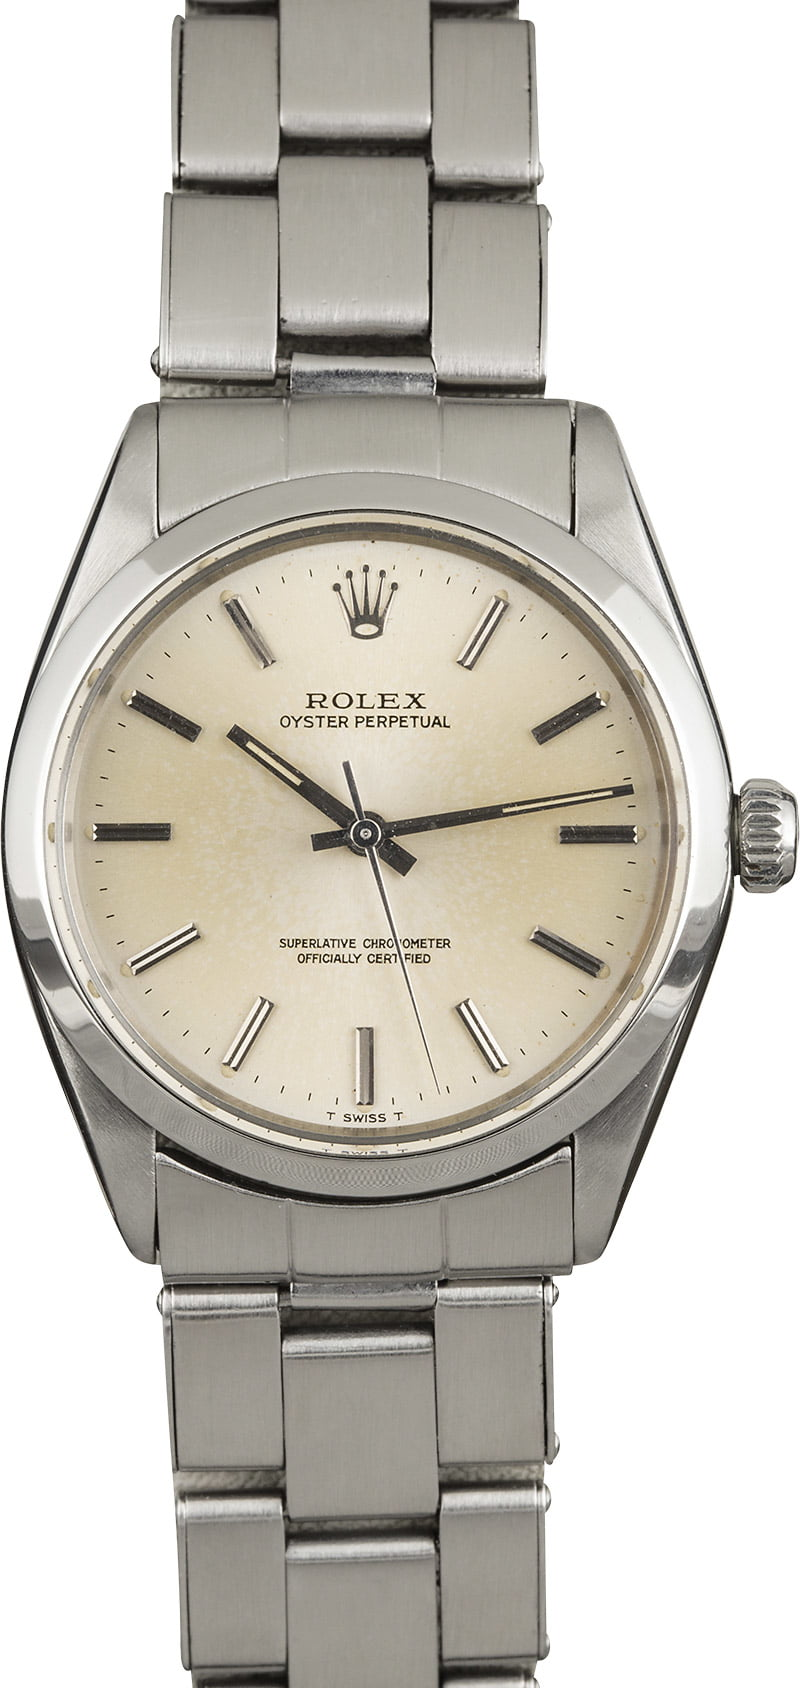 Vintage rolex oyster perpetual 1002 oyster rivet for Vintage rolex oyster